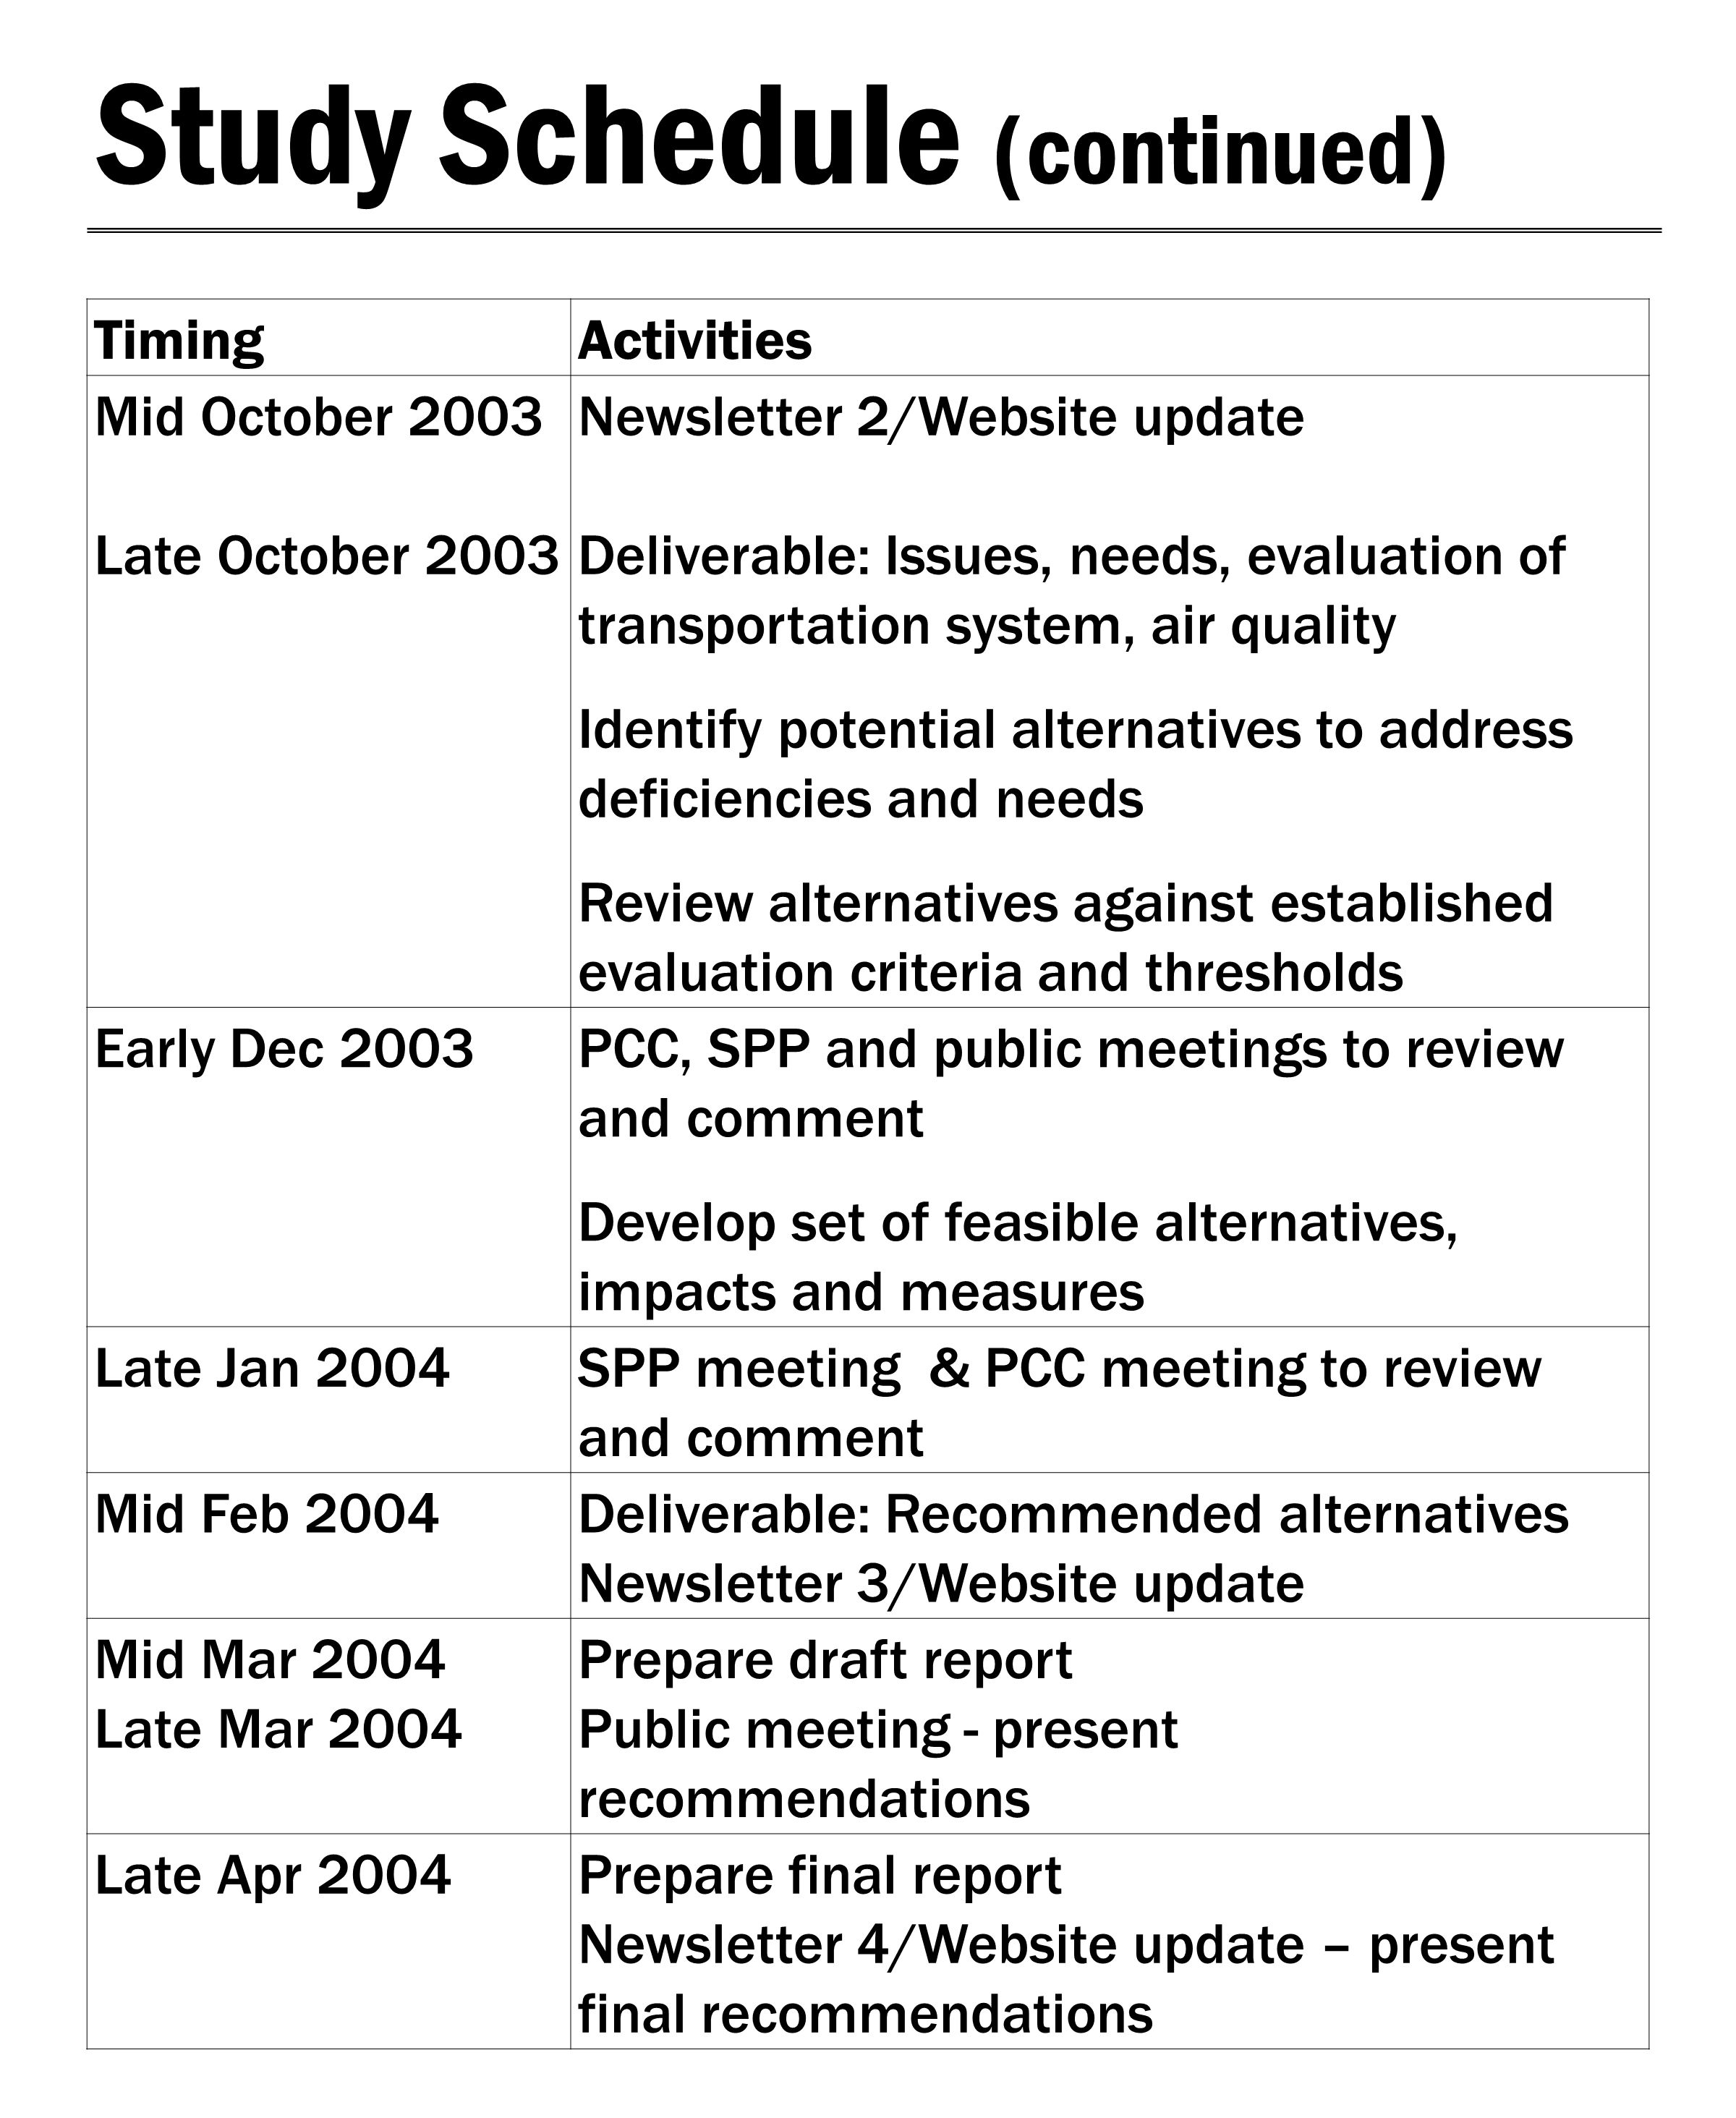 Great Meeting Agenda Stakeholder Participation Panel July 14 2003 Slide 6  6949972. Preparing Meeting Agenda Preparing Meeting Agenda Regard To Preparing Meeting Agenda